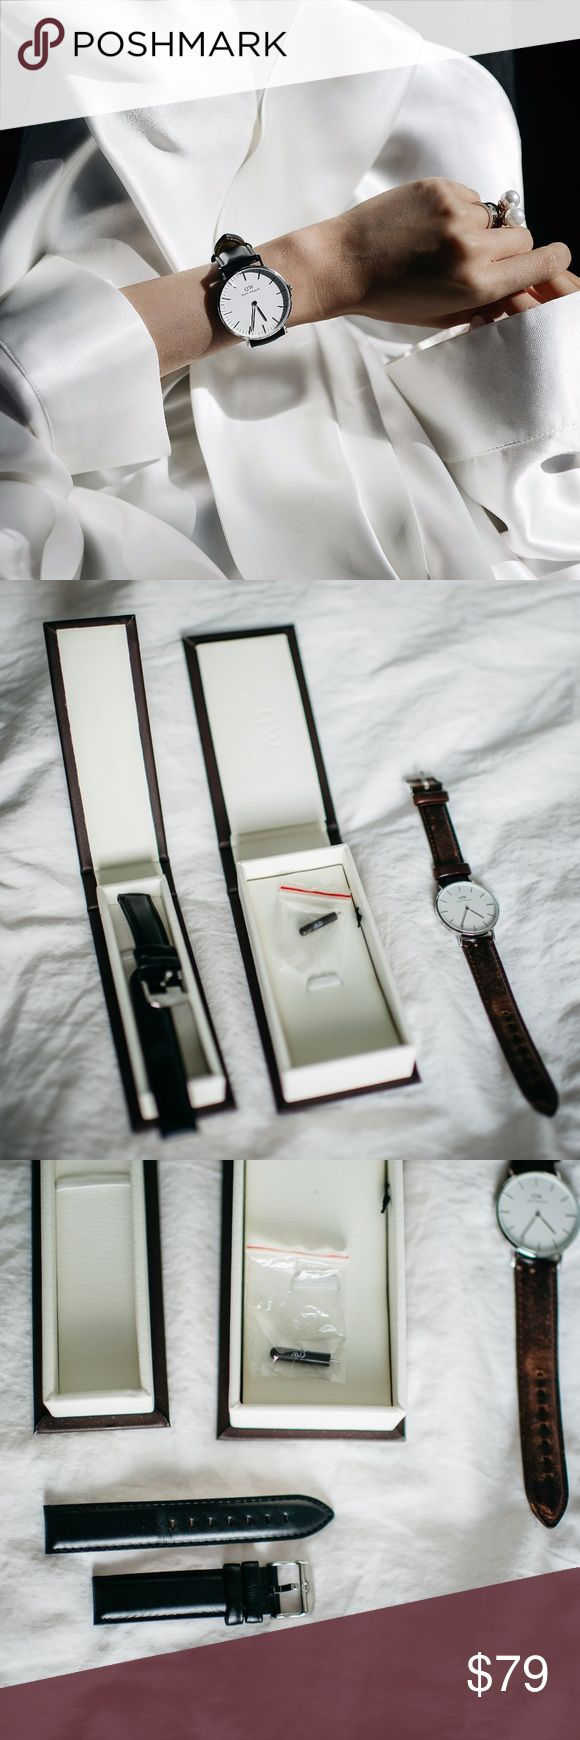 """Daniel Wellington Classic Sheffield Silver 36mm PLEASE READ: W/ boxes and TWO leather straps: 1 black Classic Sheffield strap, and 1 Classic brown Bristol strap.  Worn once for the pictured photoshoot. Minimal wear on the leather straps due to fitting. Price is final.   Product details:  """"This minimalistic piece proves that simple does not necessarily mean boring."""" Case thickness 6mm Dial color:Eggshell White Movement:Japanese Quartz Movement Strap width:18mm Interchangeable straps: Yes…"""